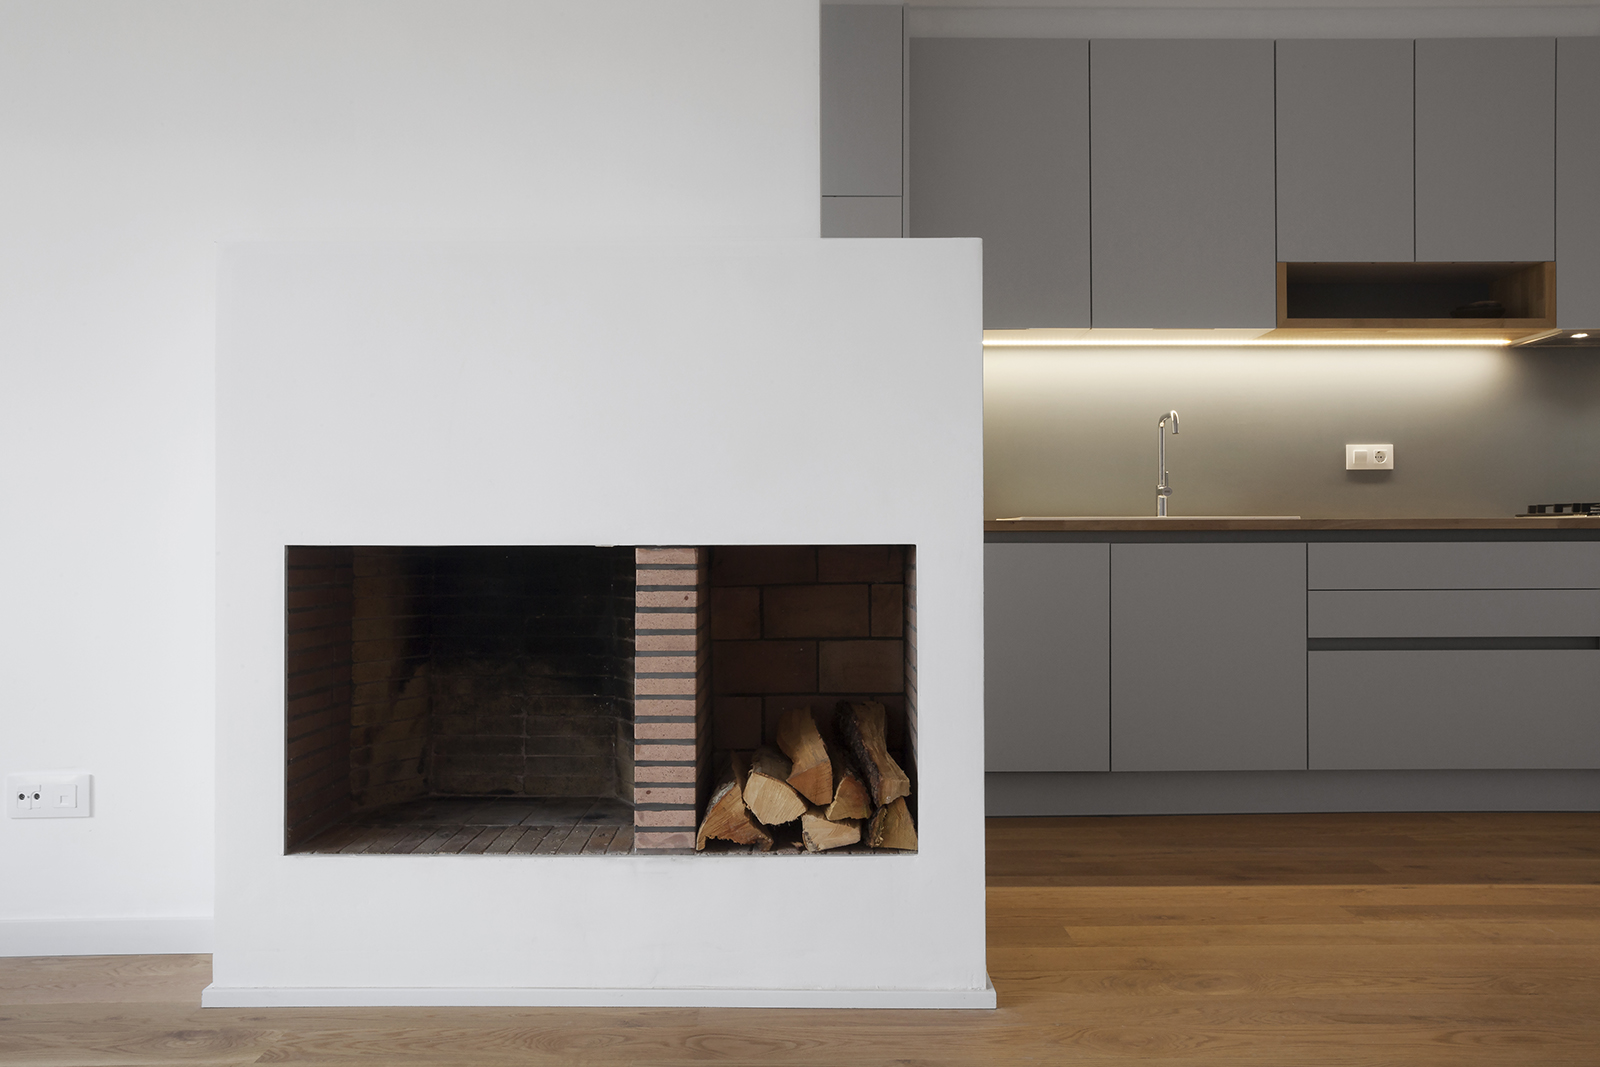 fireplace low res.jpg